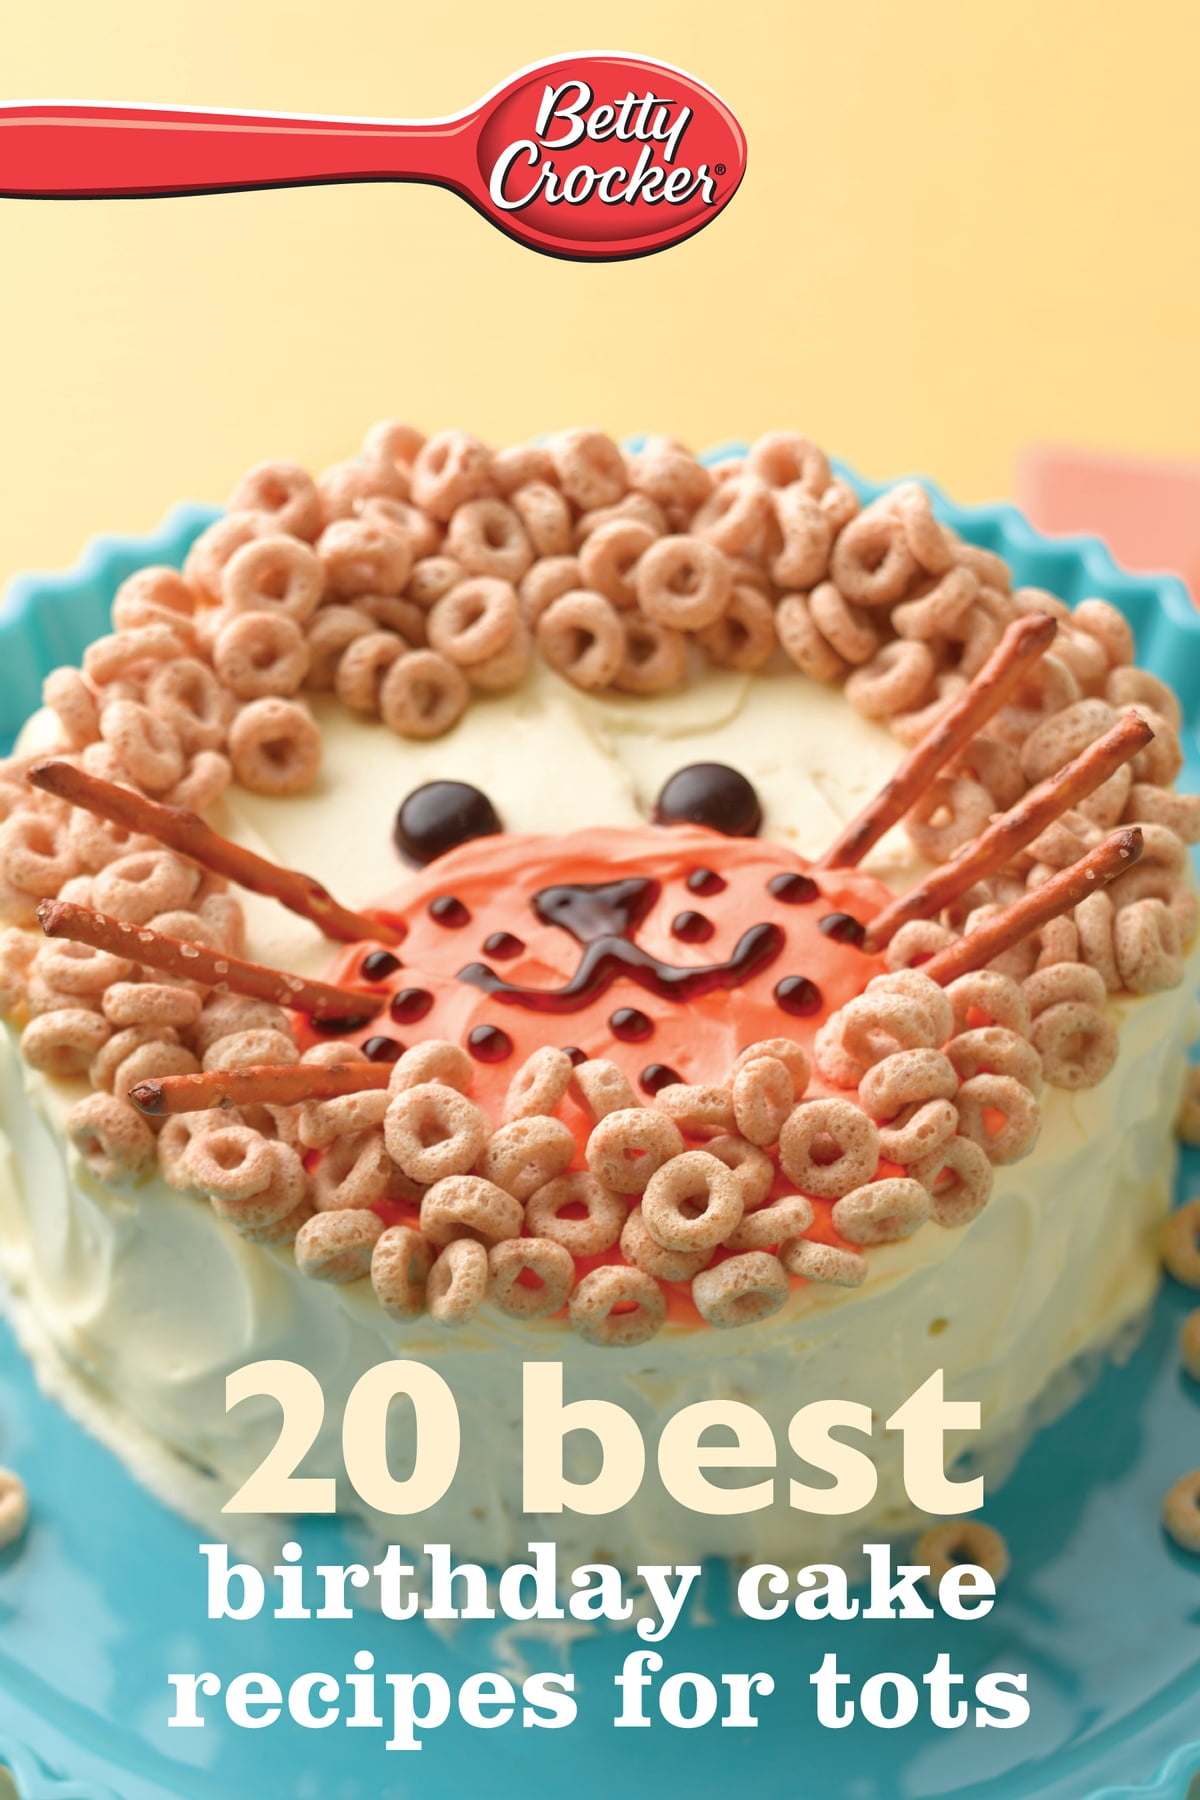 Prime Betty Crocker 20 Best Birthday Cakes Recipes For Tots Ebook By Funny Birthday Cards Online Inifodamsfinfo